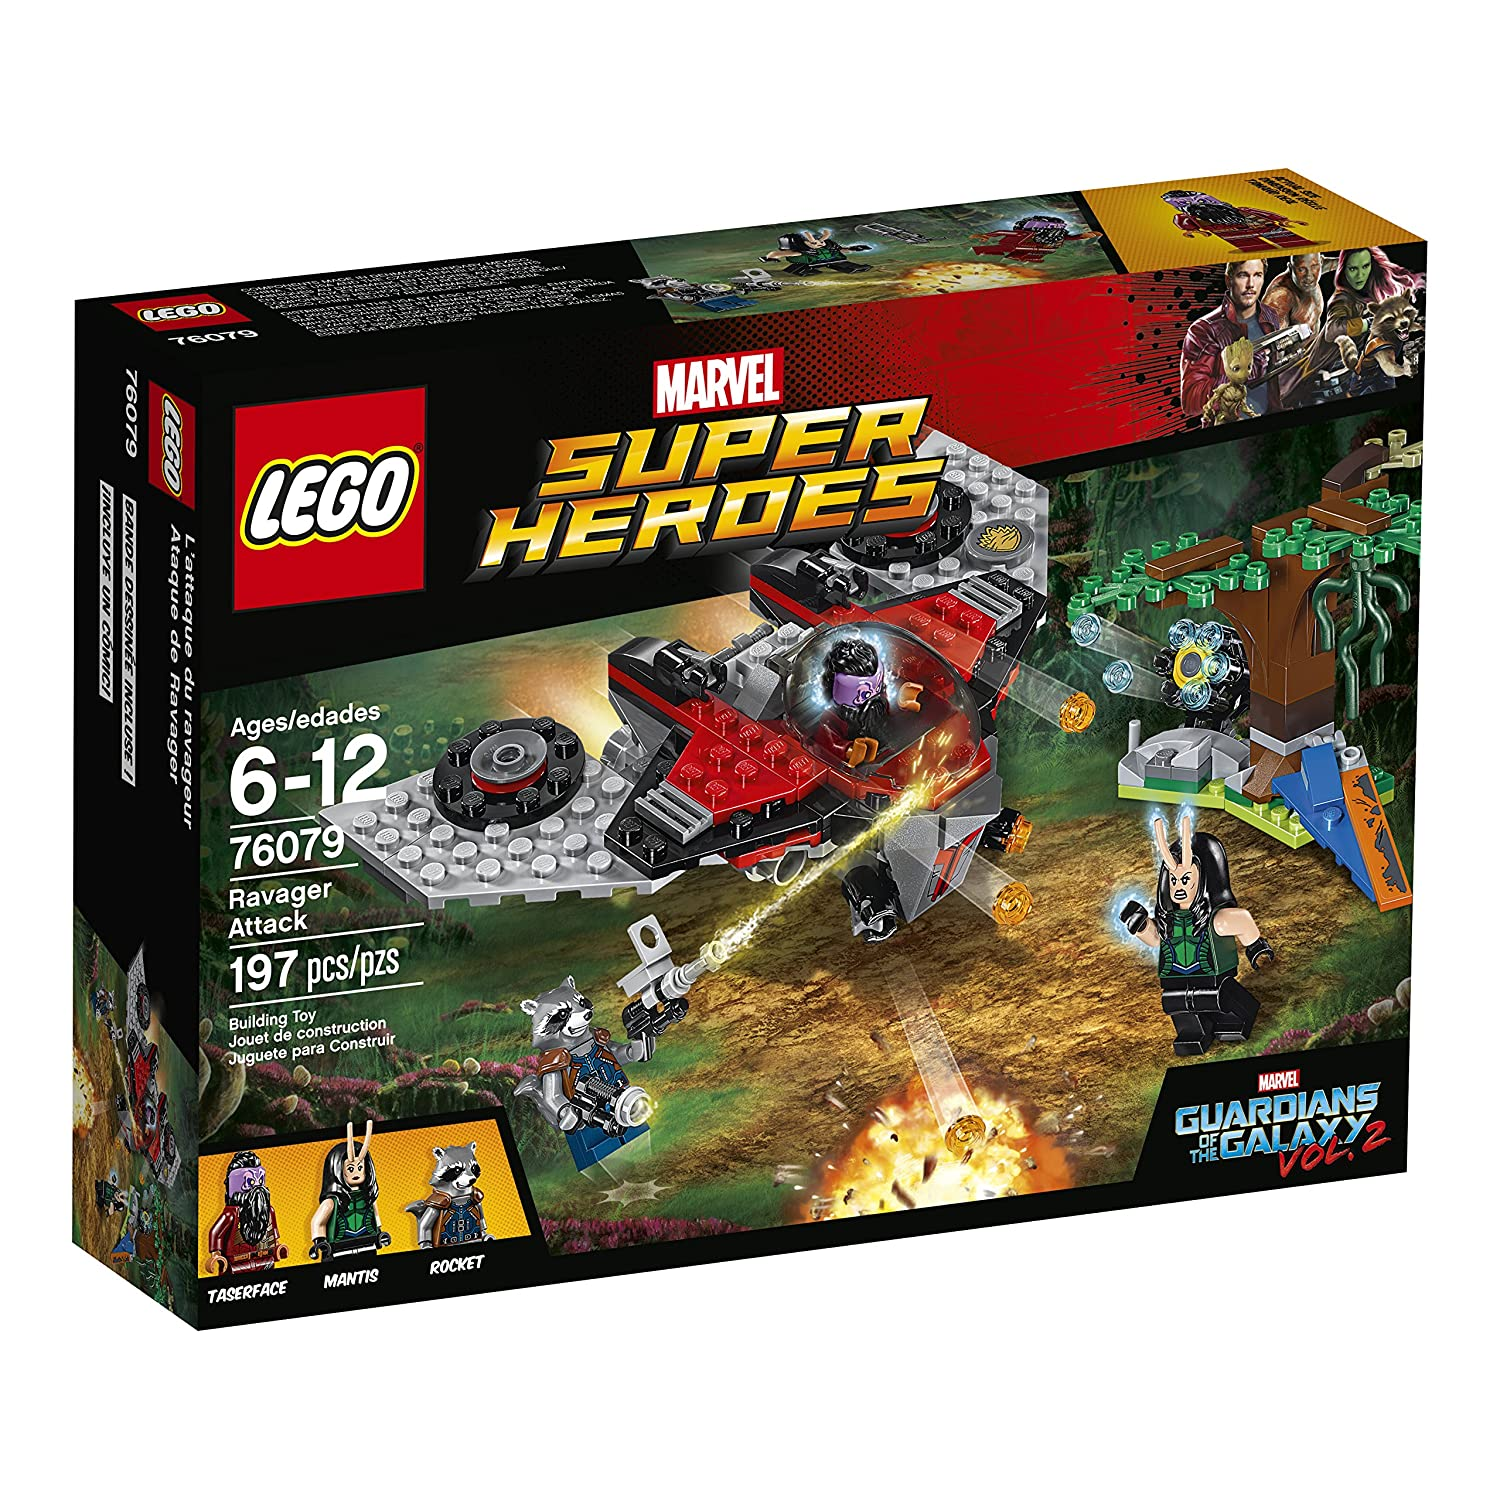 Top 7 Best LEGO Guardians of the Galaxy Sets Reviews in 2020 5